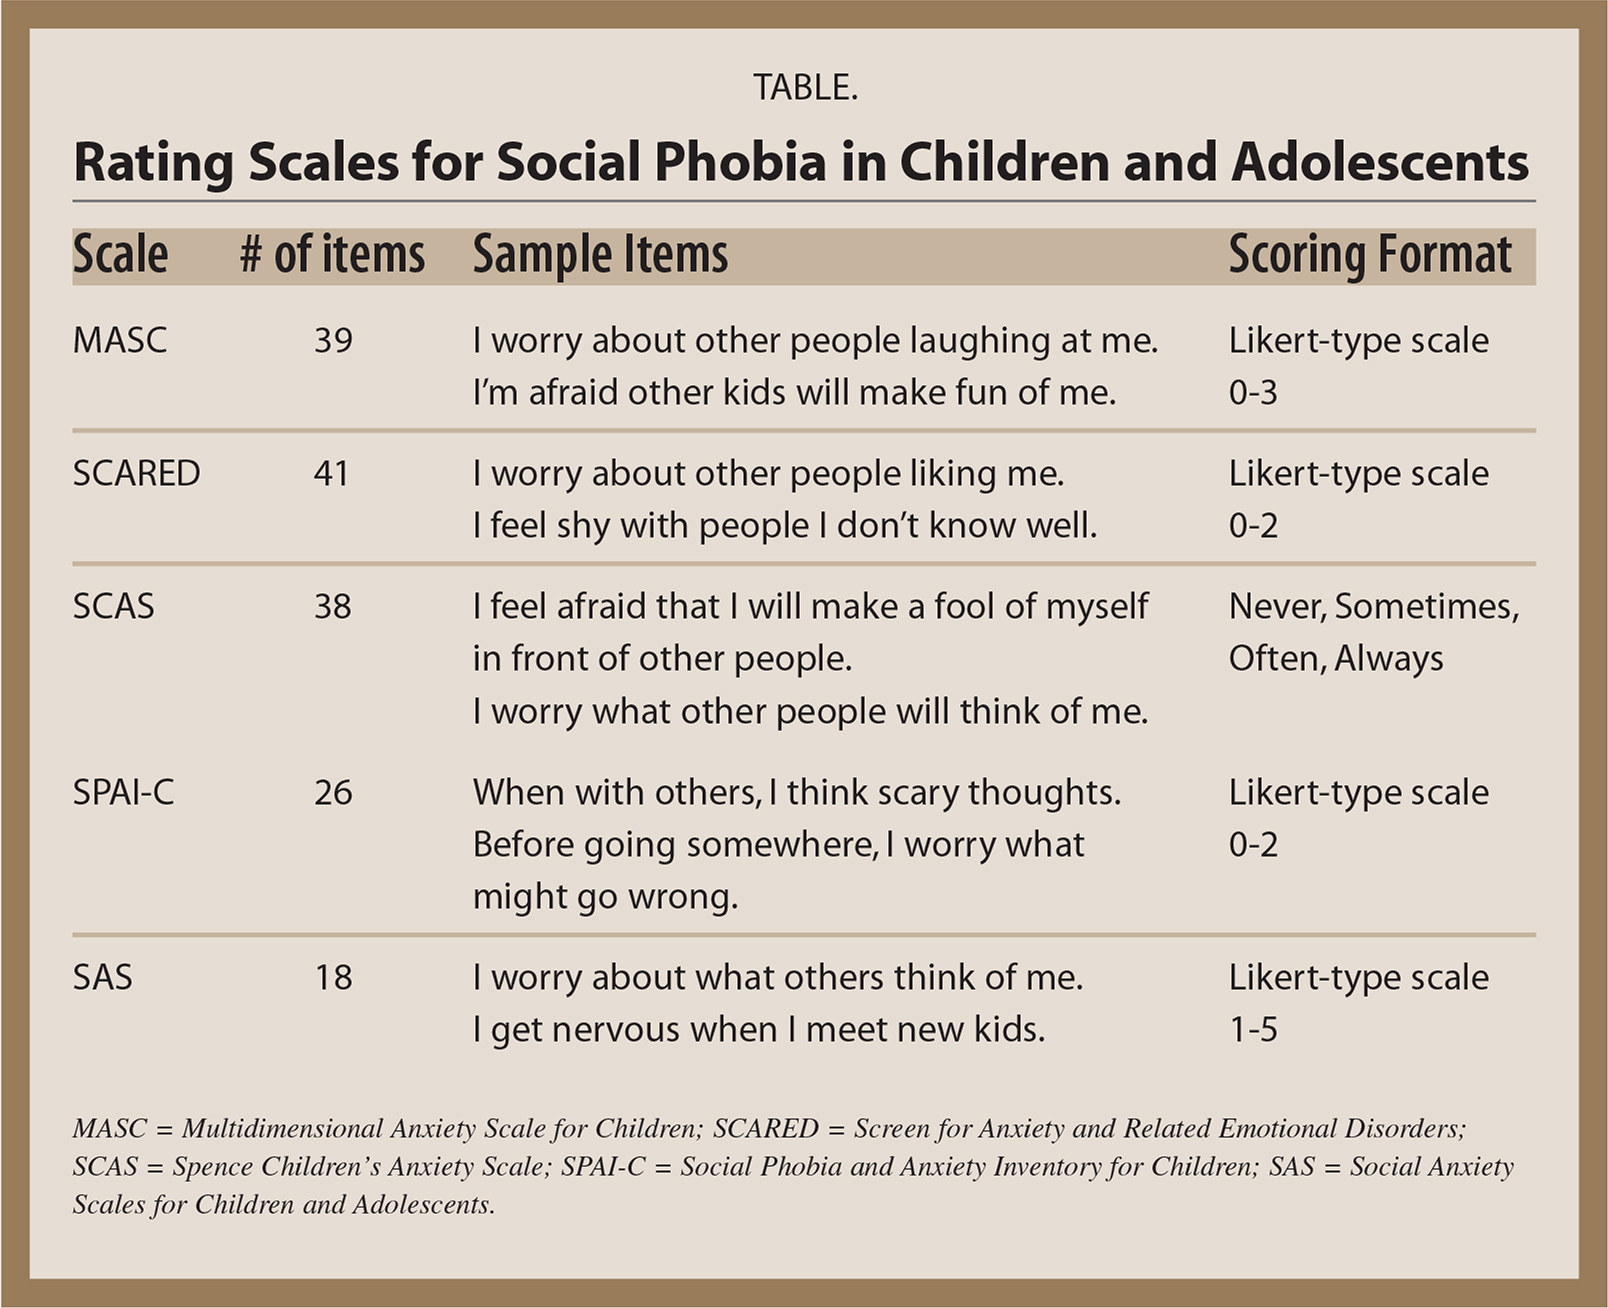 Rating Scales for Social Phobia in Children and Adolescents